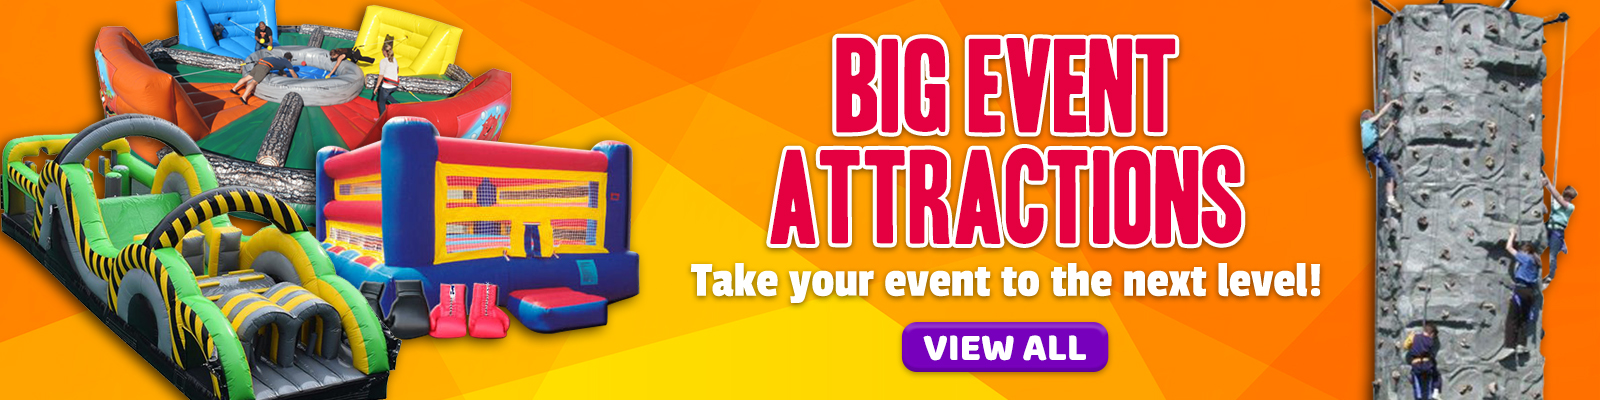 Austin Big Event Attractions